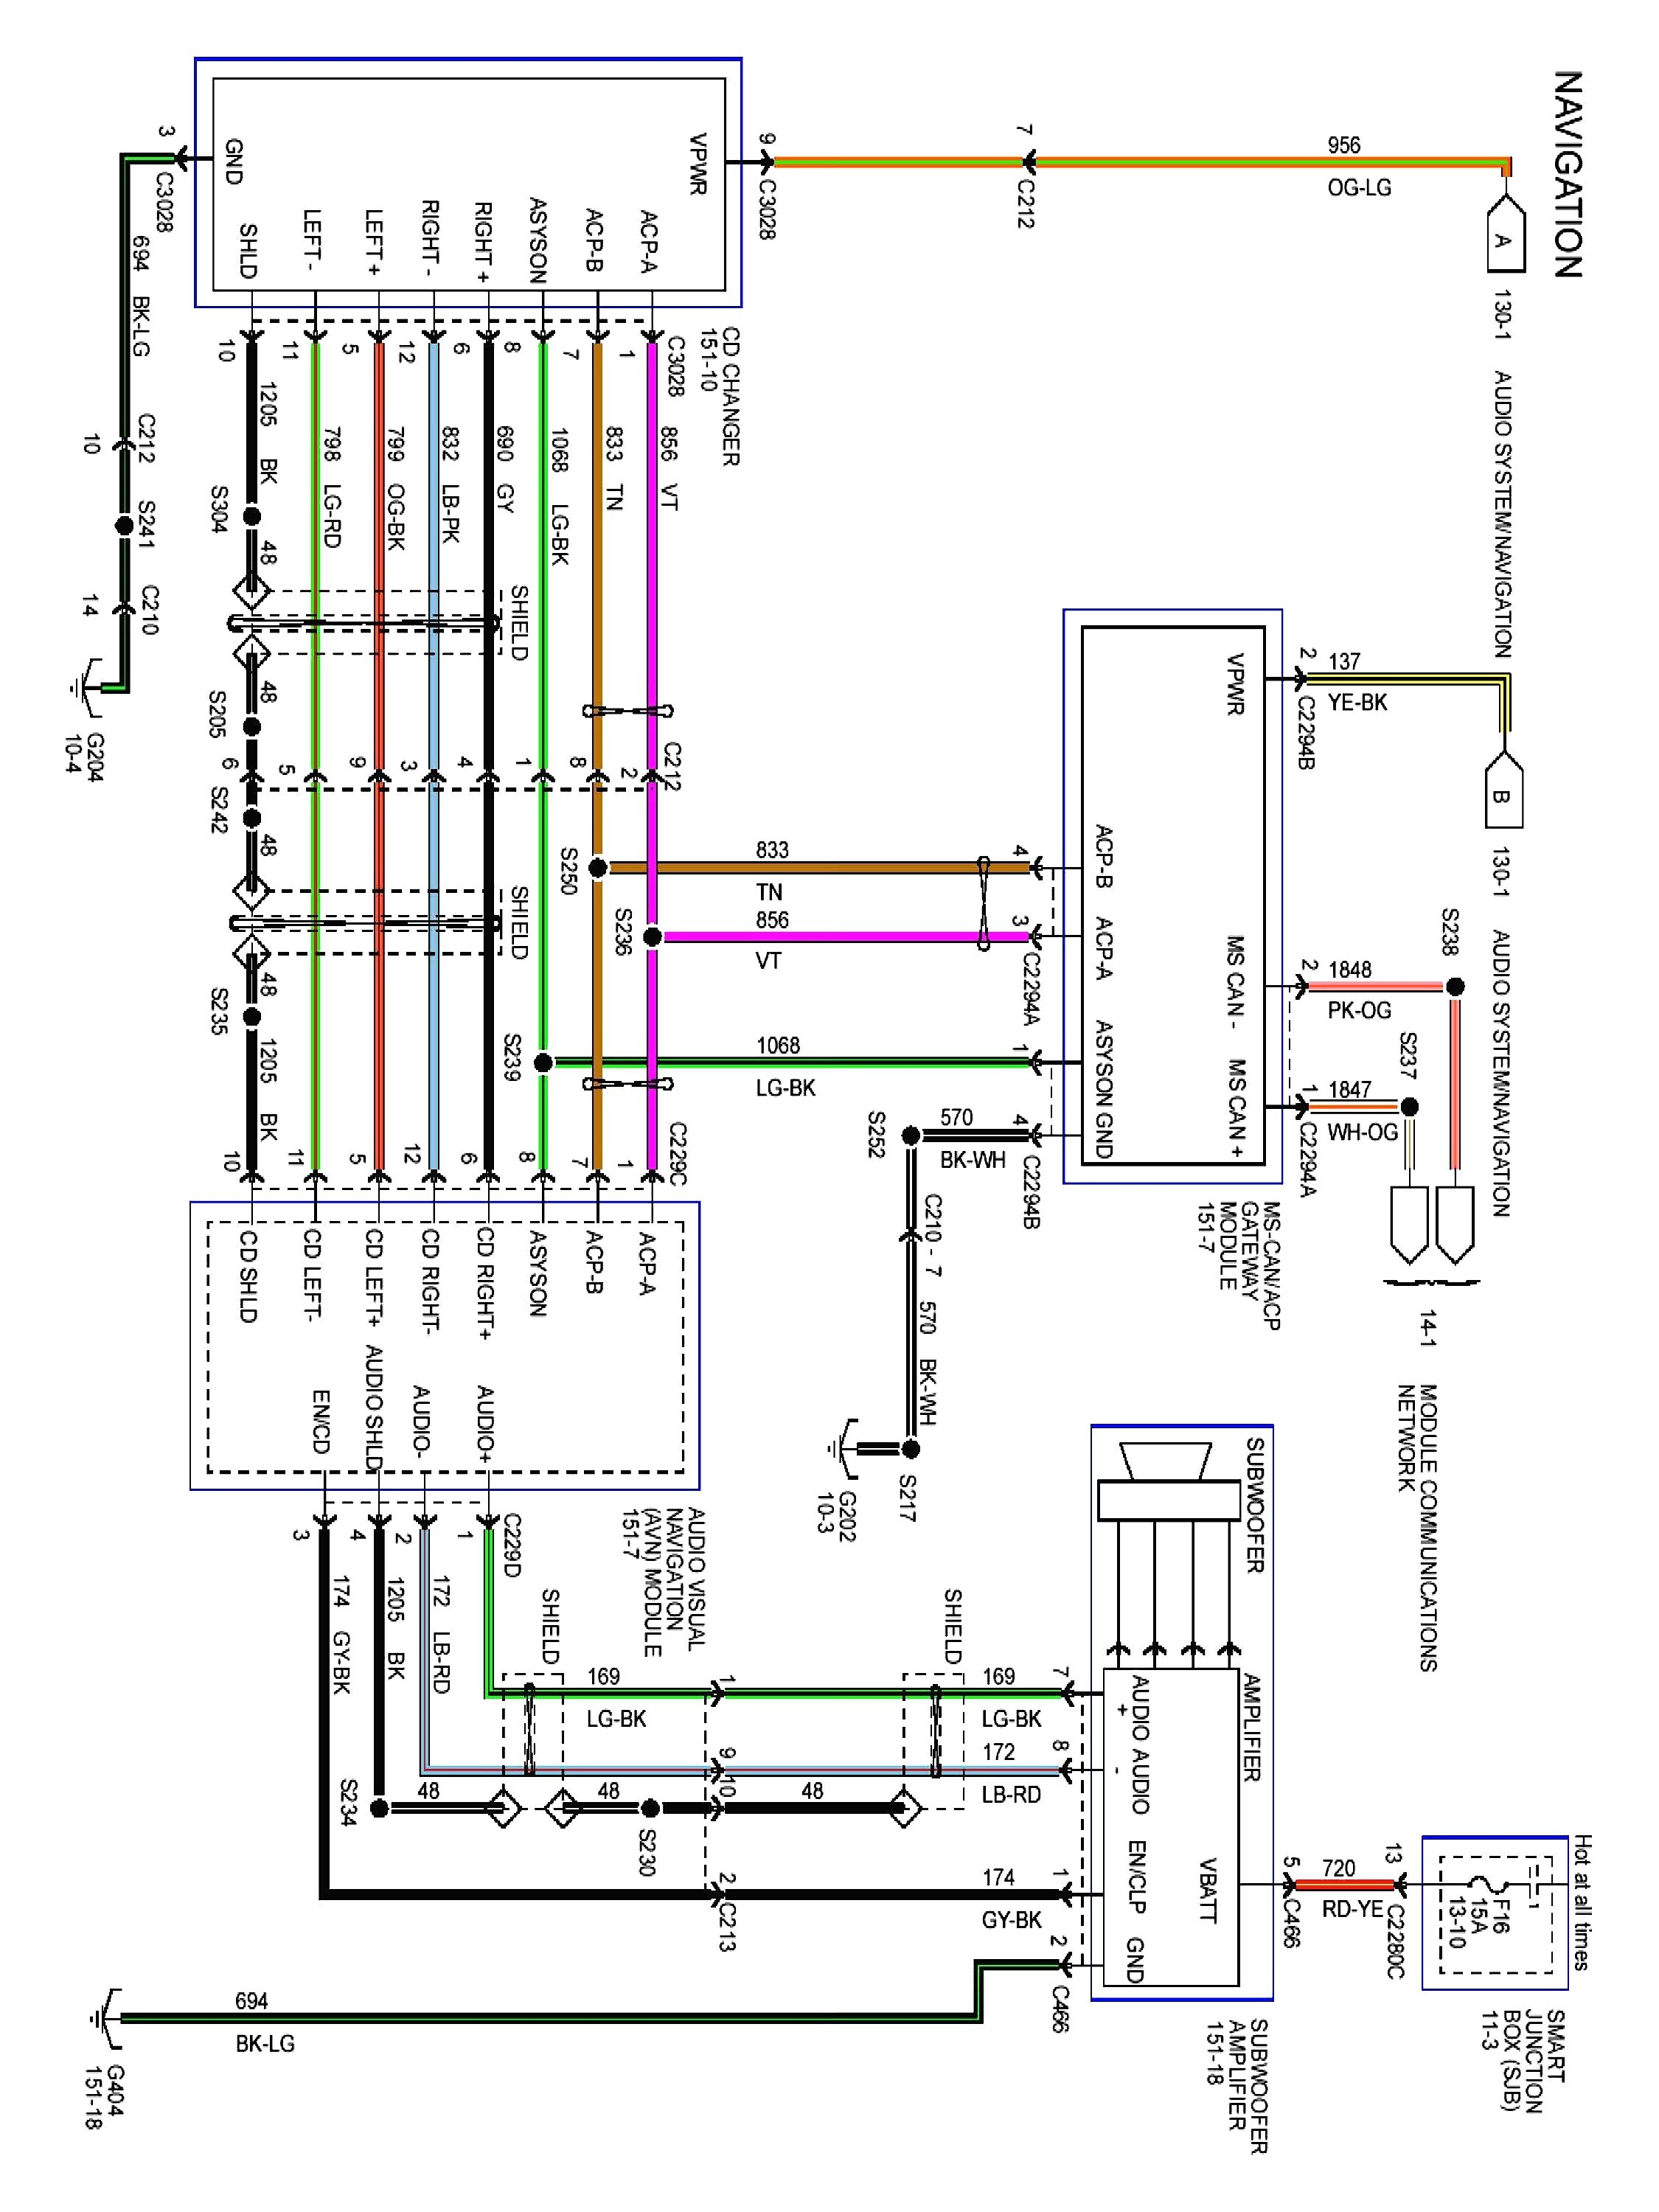 1997 ford expedition wiring diagram ba 9567  2003 ford expedition audio wiring download diagram  2003 ford expedition audio wiring